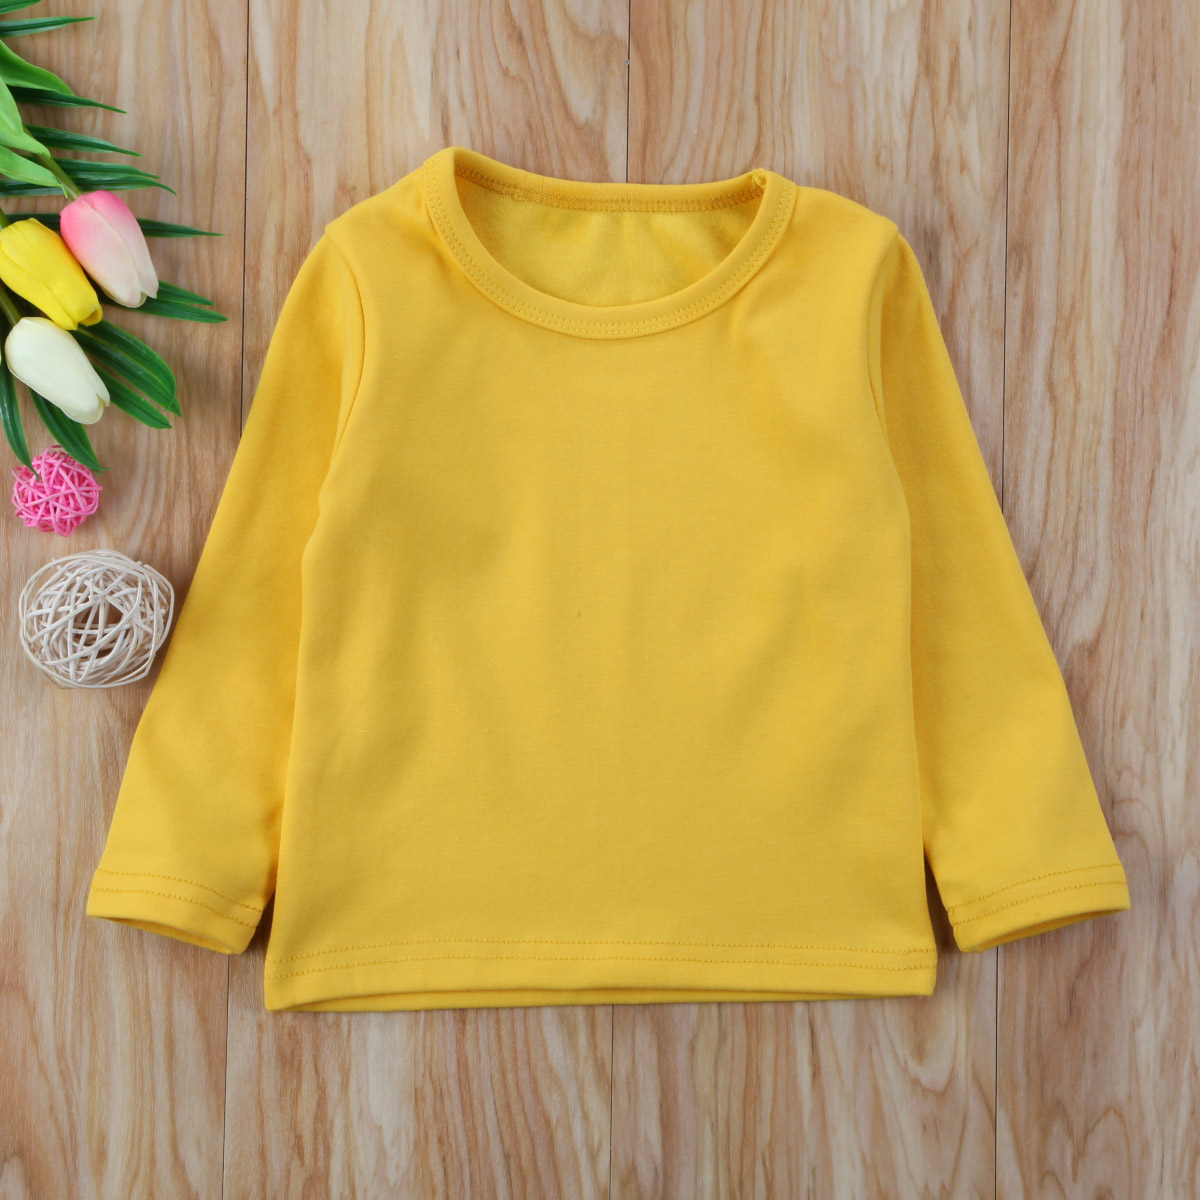 Autumn Cotton Newborn Infant Kids Baby Boys Girls Clothes Solid Cotton Soft Clothing Long Sleeves T-shirt Tops 11